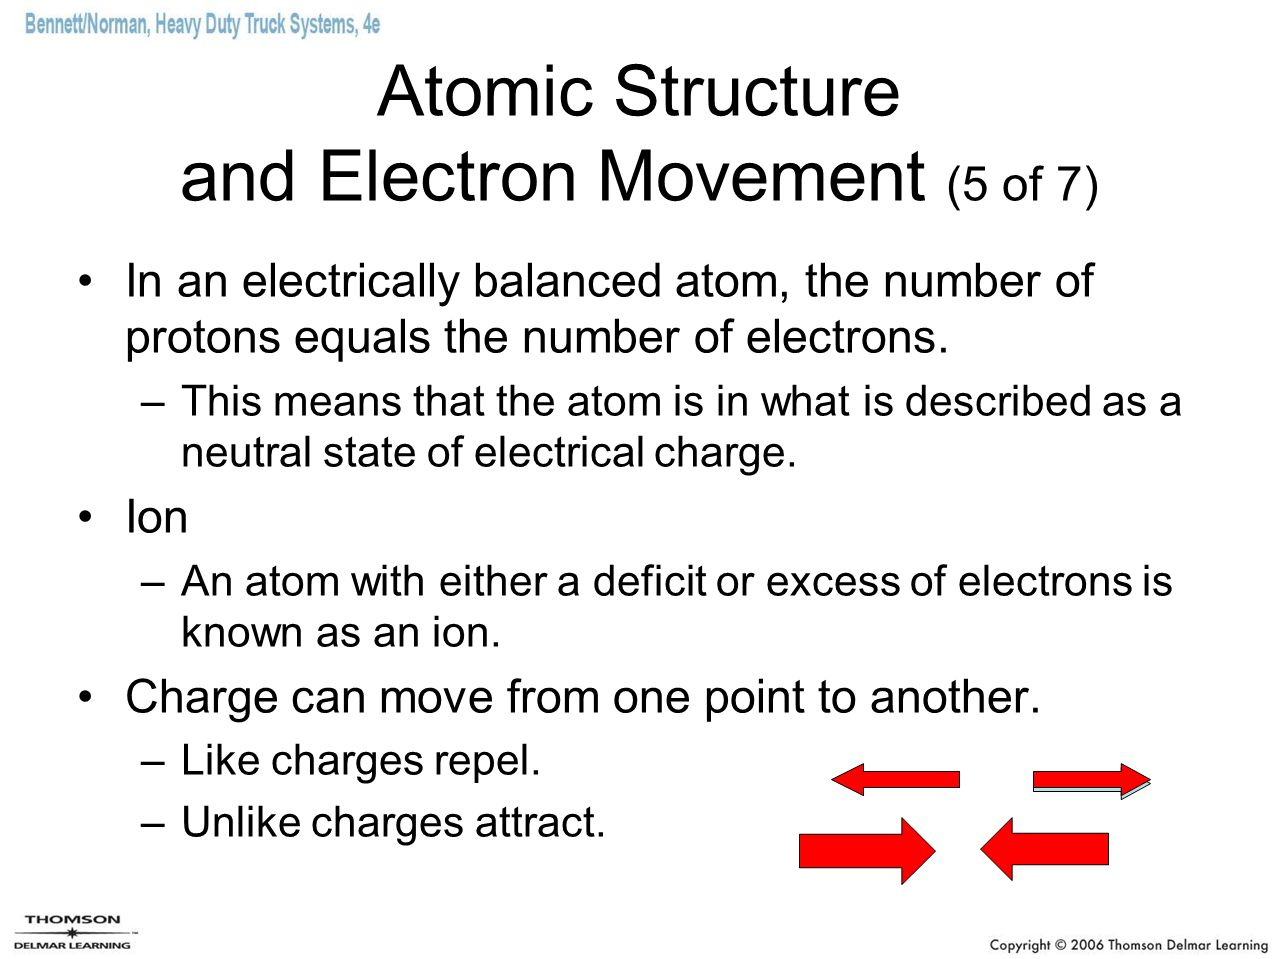 Atomic Structure and Electron Movement (5 of 7)